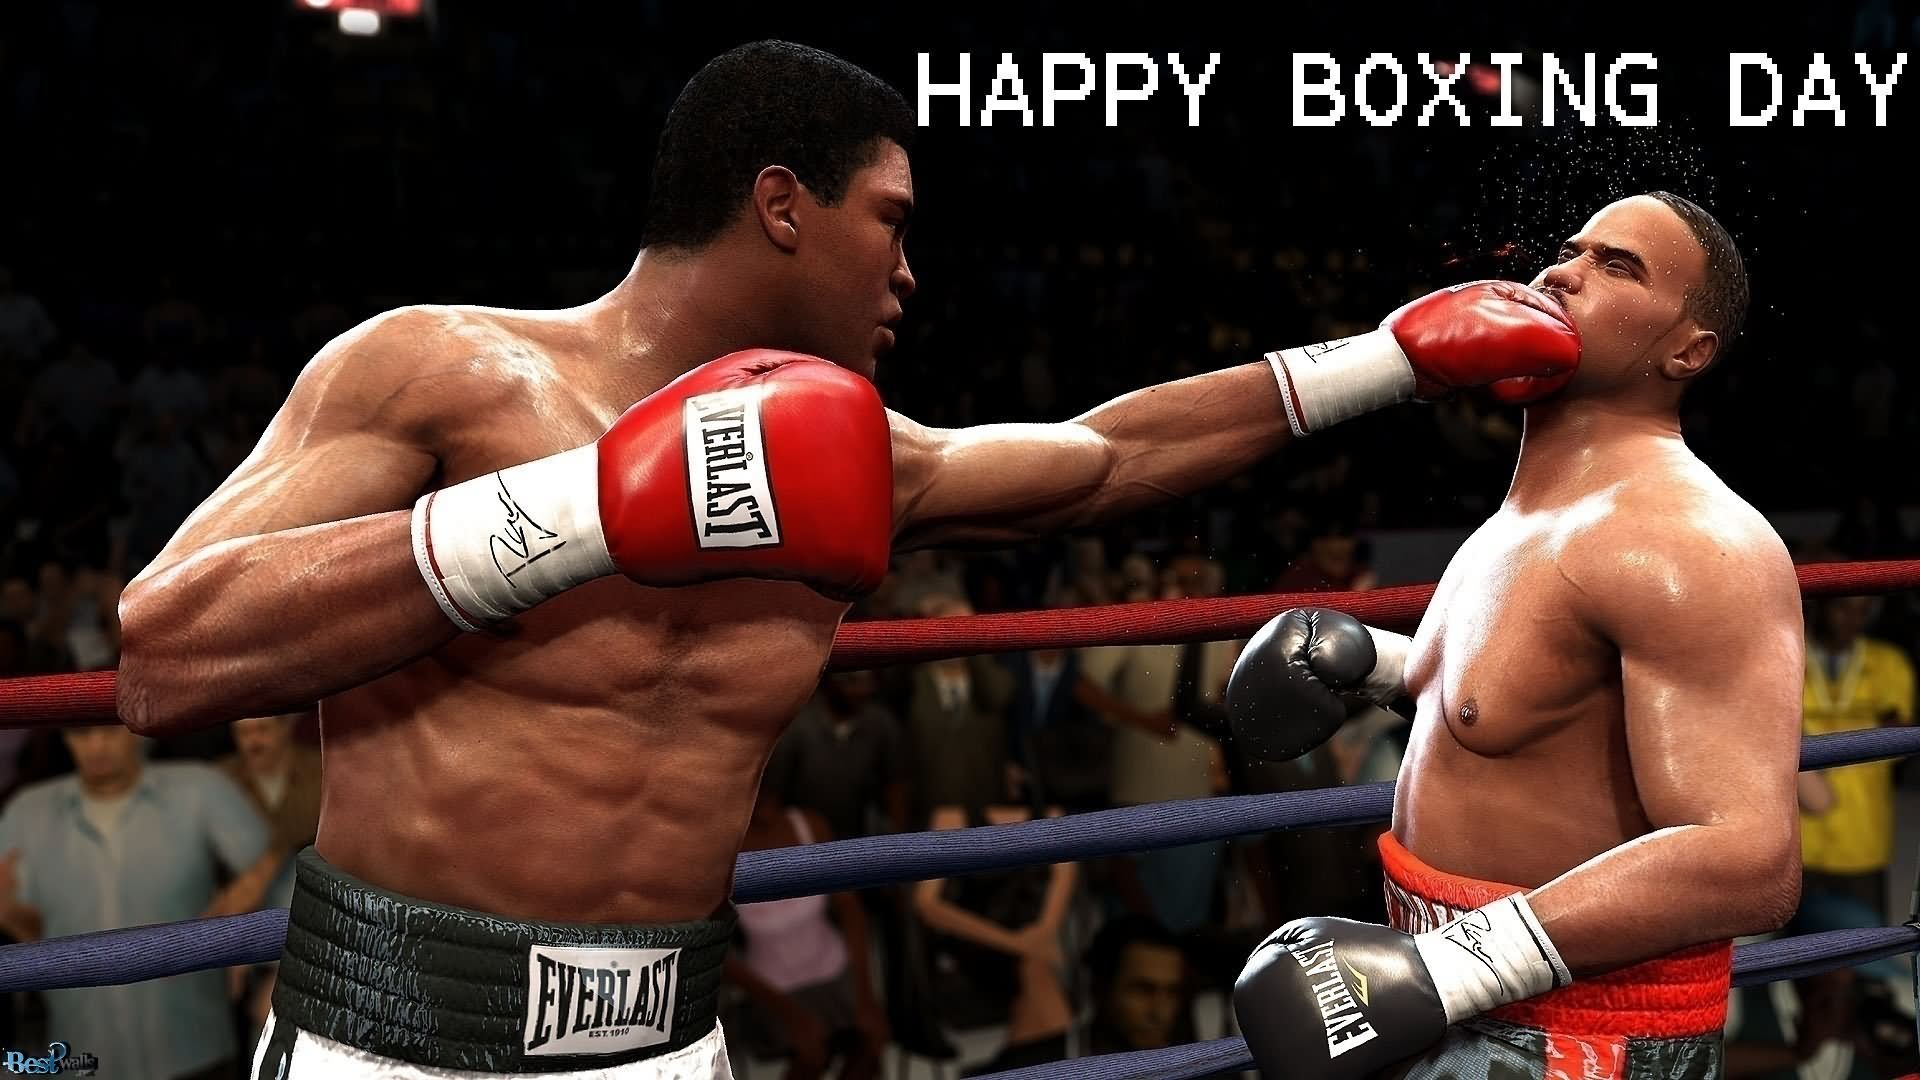 Happy Boxing Day Game Picture